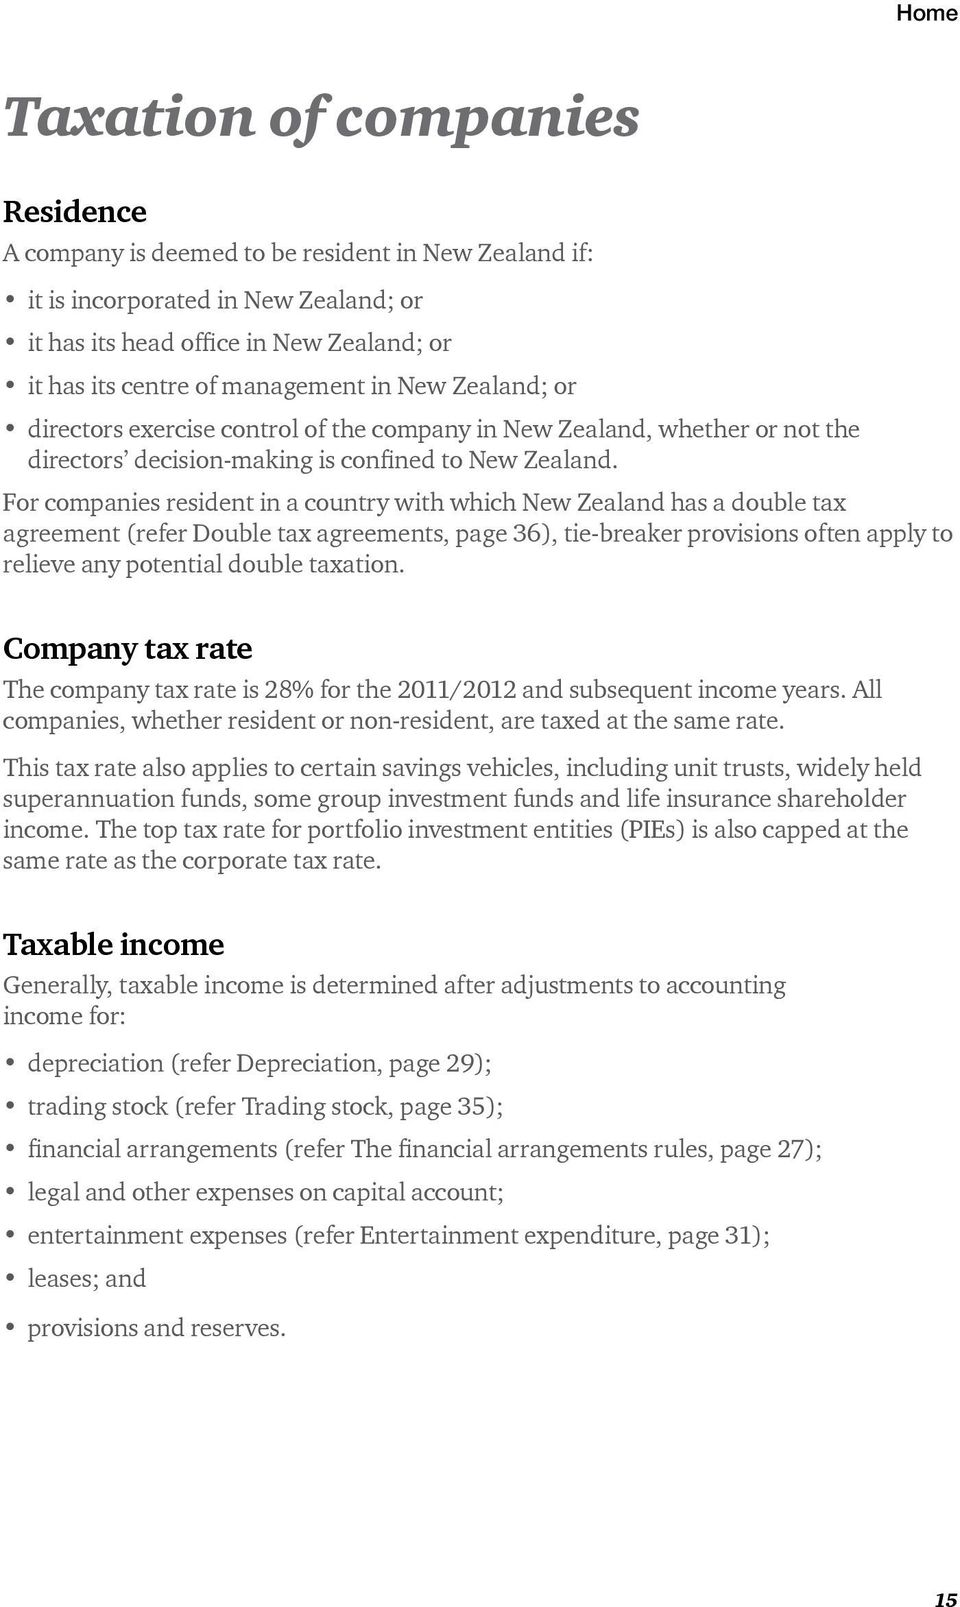 For companies resident in a country with which New Zealand has a double tax agreement (refer Double tax agreements, page 36), tie-breaker provisions often apply to relieve any potential double